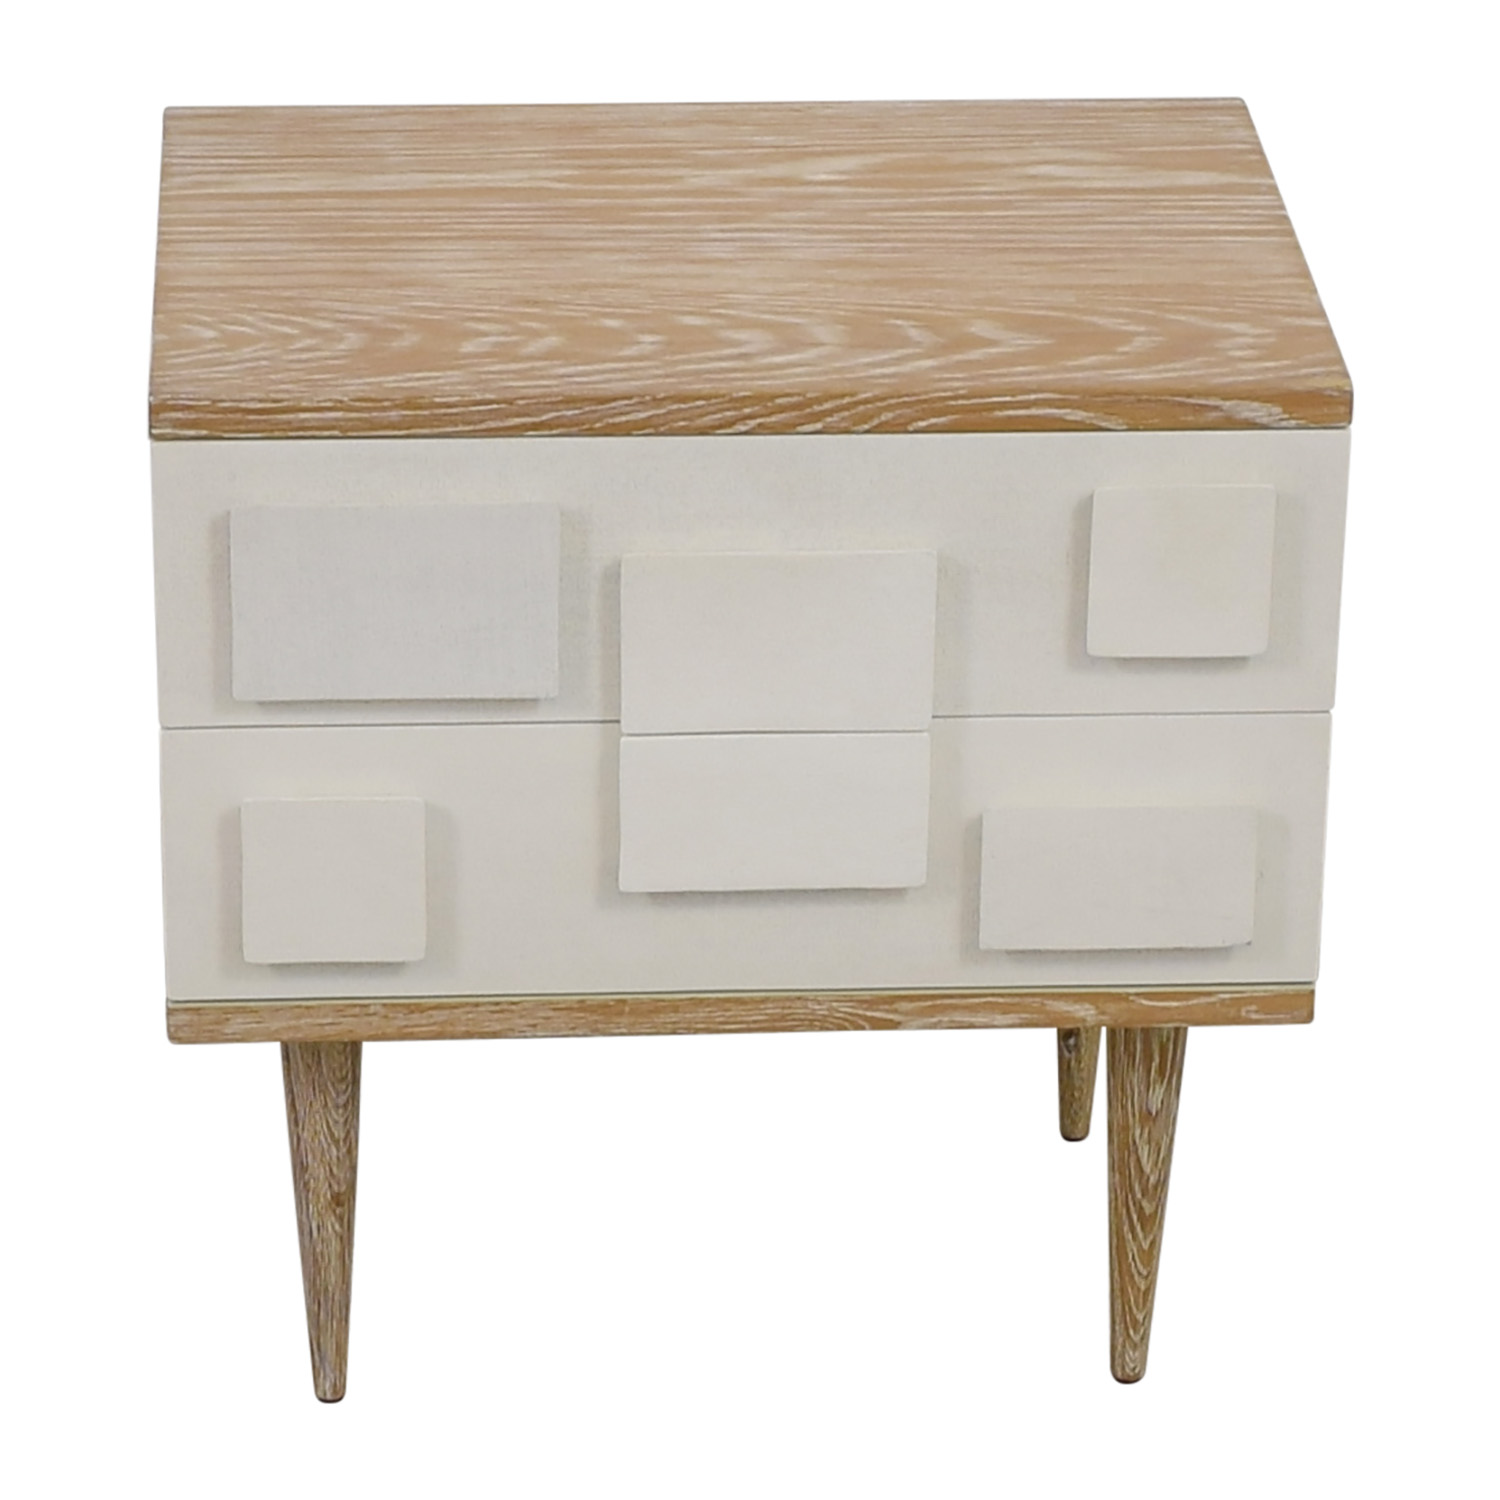 Bungalow 5 Bungalow 5 Ponti Side Table nyc